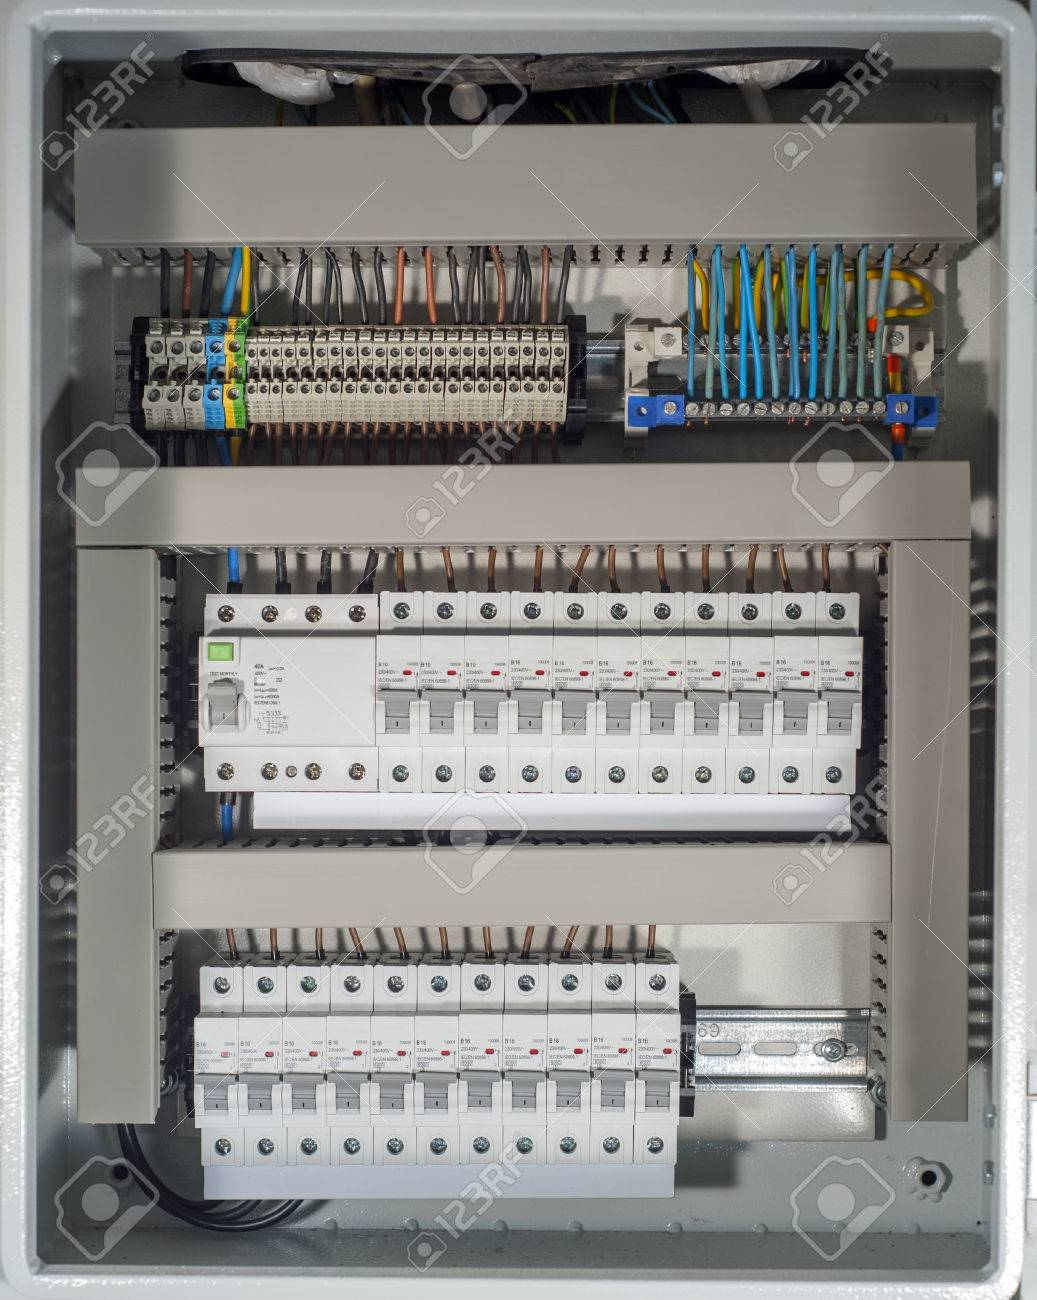 automatic fuses and wires in fusebox electricity distribution 2003 chevy impala fuse box automatic fuses and wires in fusebox electricity distribution box inside stock photo 56082138